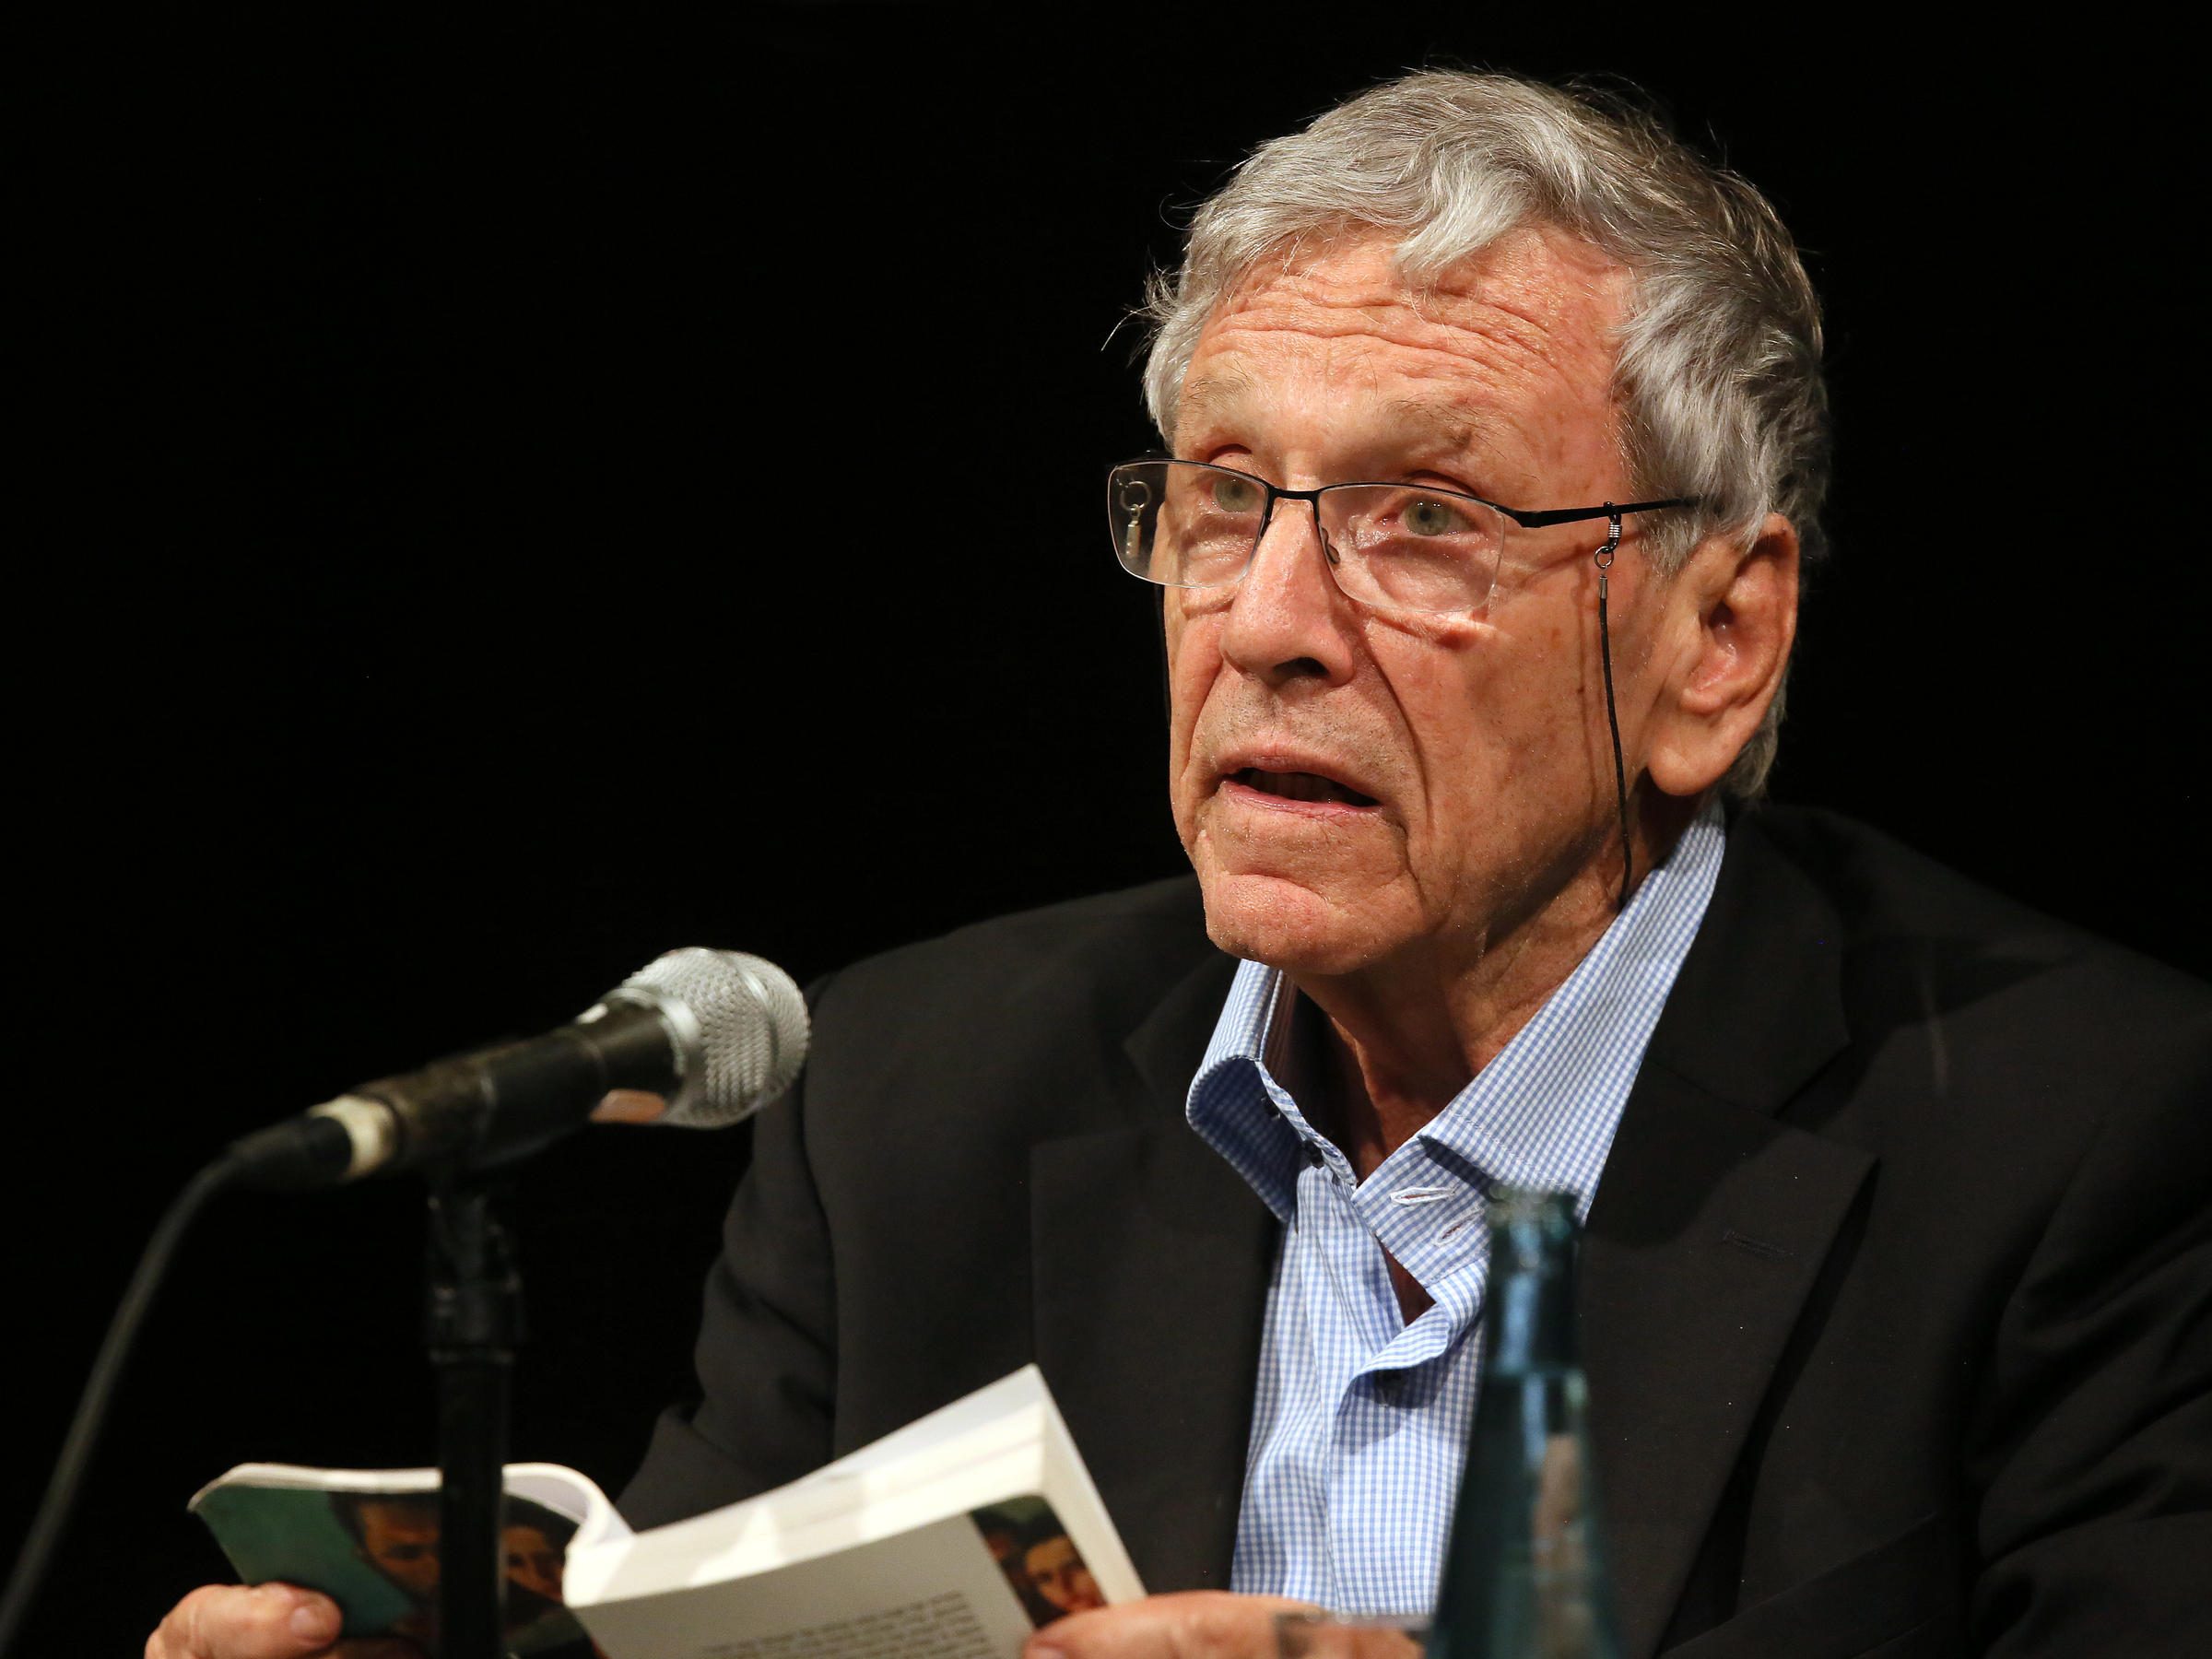 Prominent Israeli author Amos Oz passes away at 79